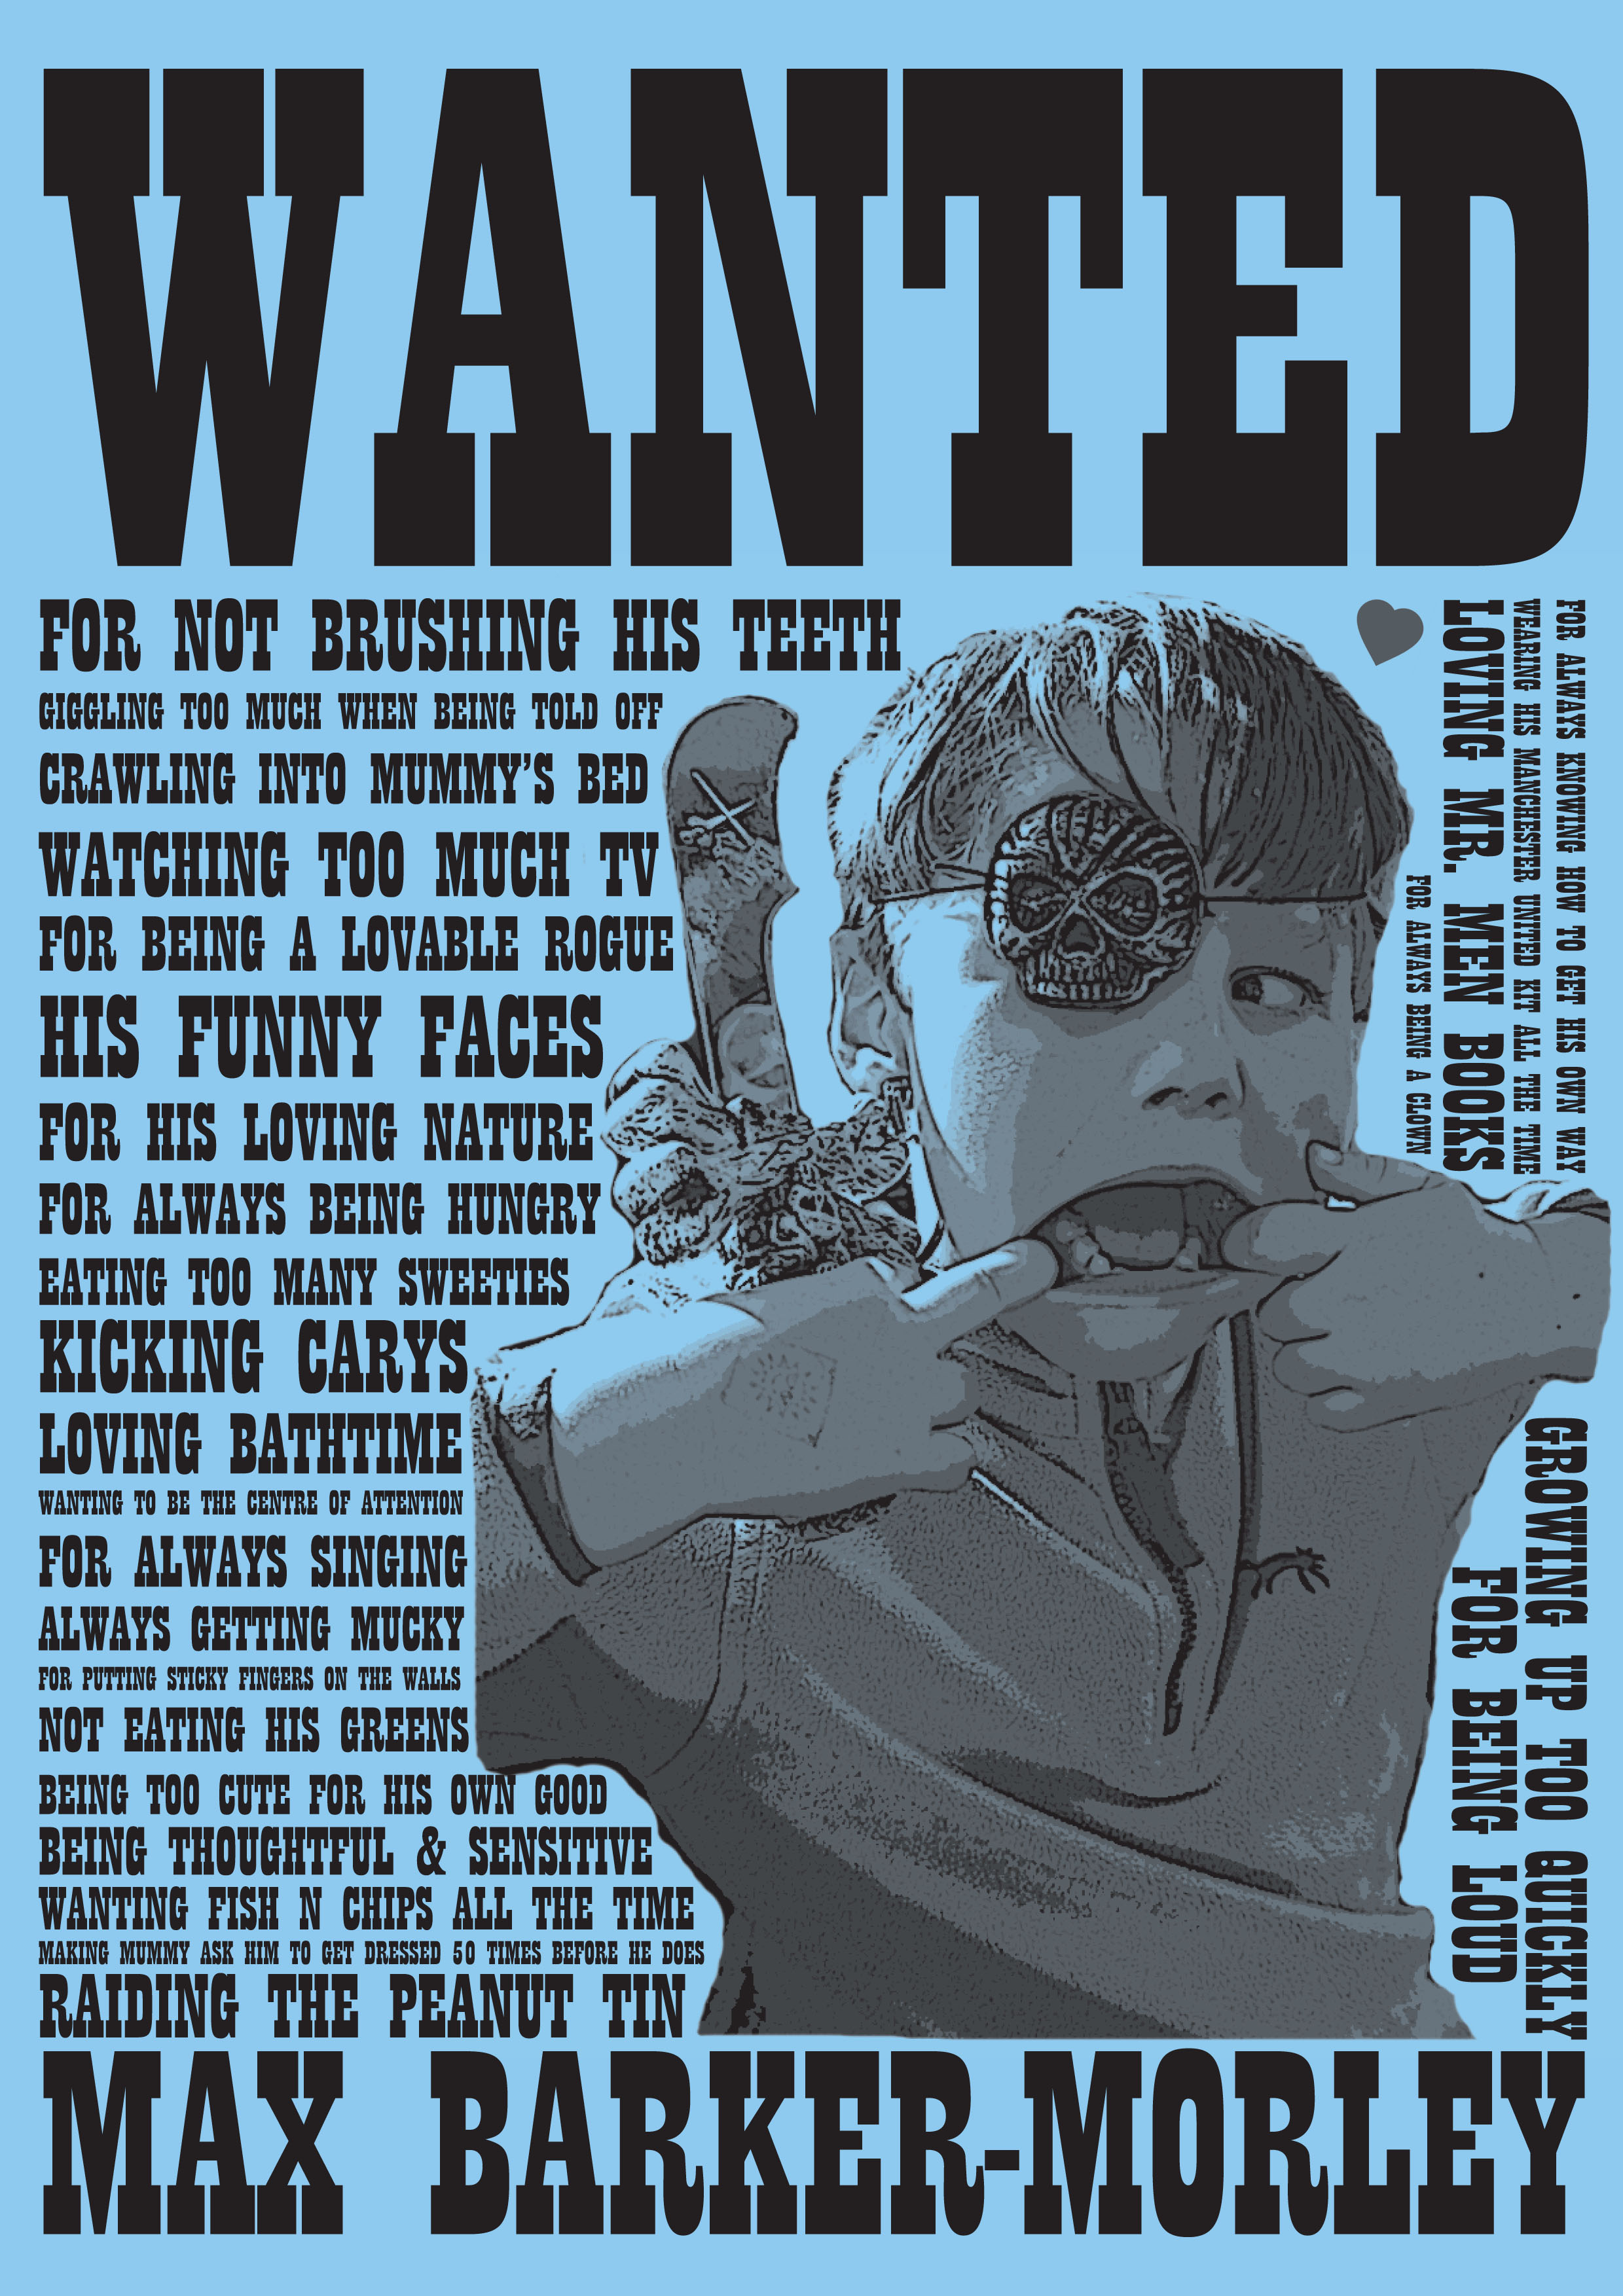 Charming Iu0027ve Taken A Bit Of A Spin On The Age Old U0027Wantedu0027 Poster Using The  Font Style Used In These Old Fashioned Posters. Perhaps The Person Featured  Is Wanted ... And Old Fashioned Wanted Poster